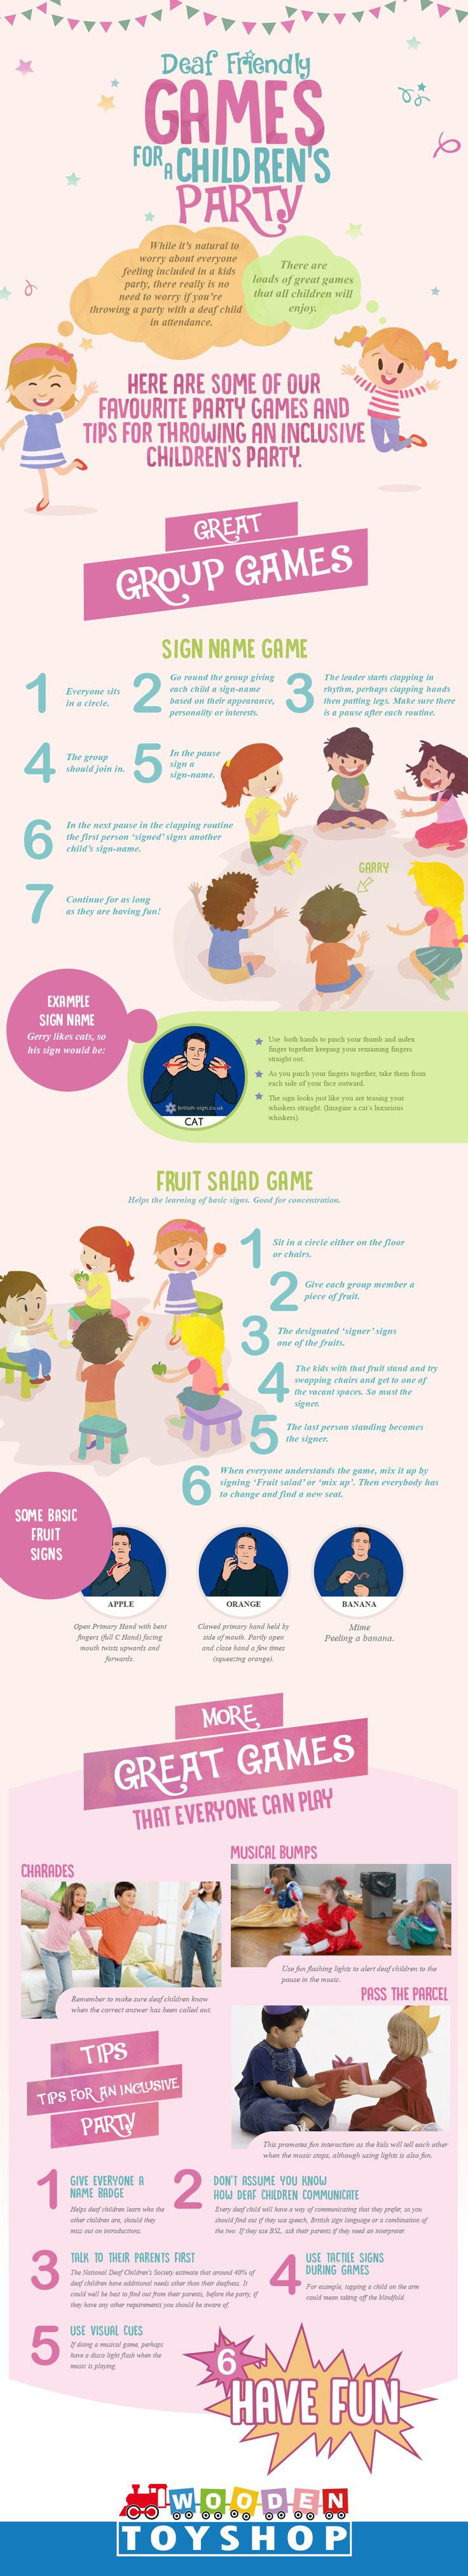 Deaf-friendly Games For A Children Party #Infographic #Children #Party